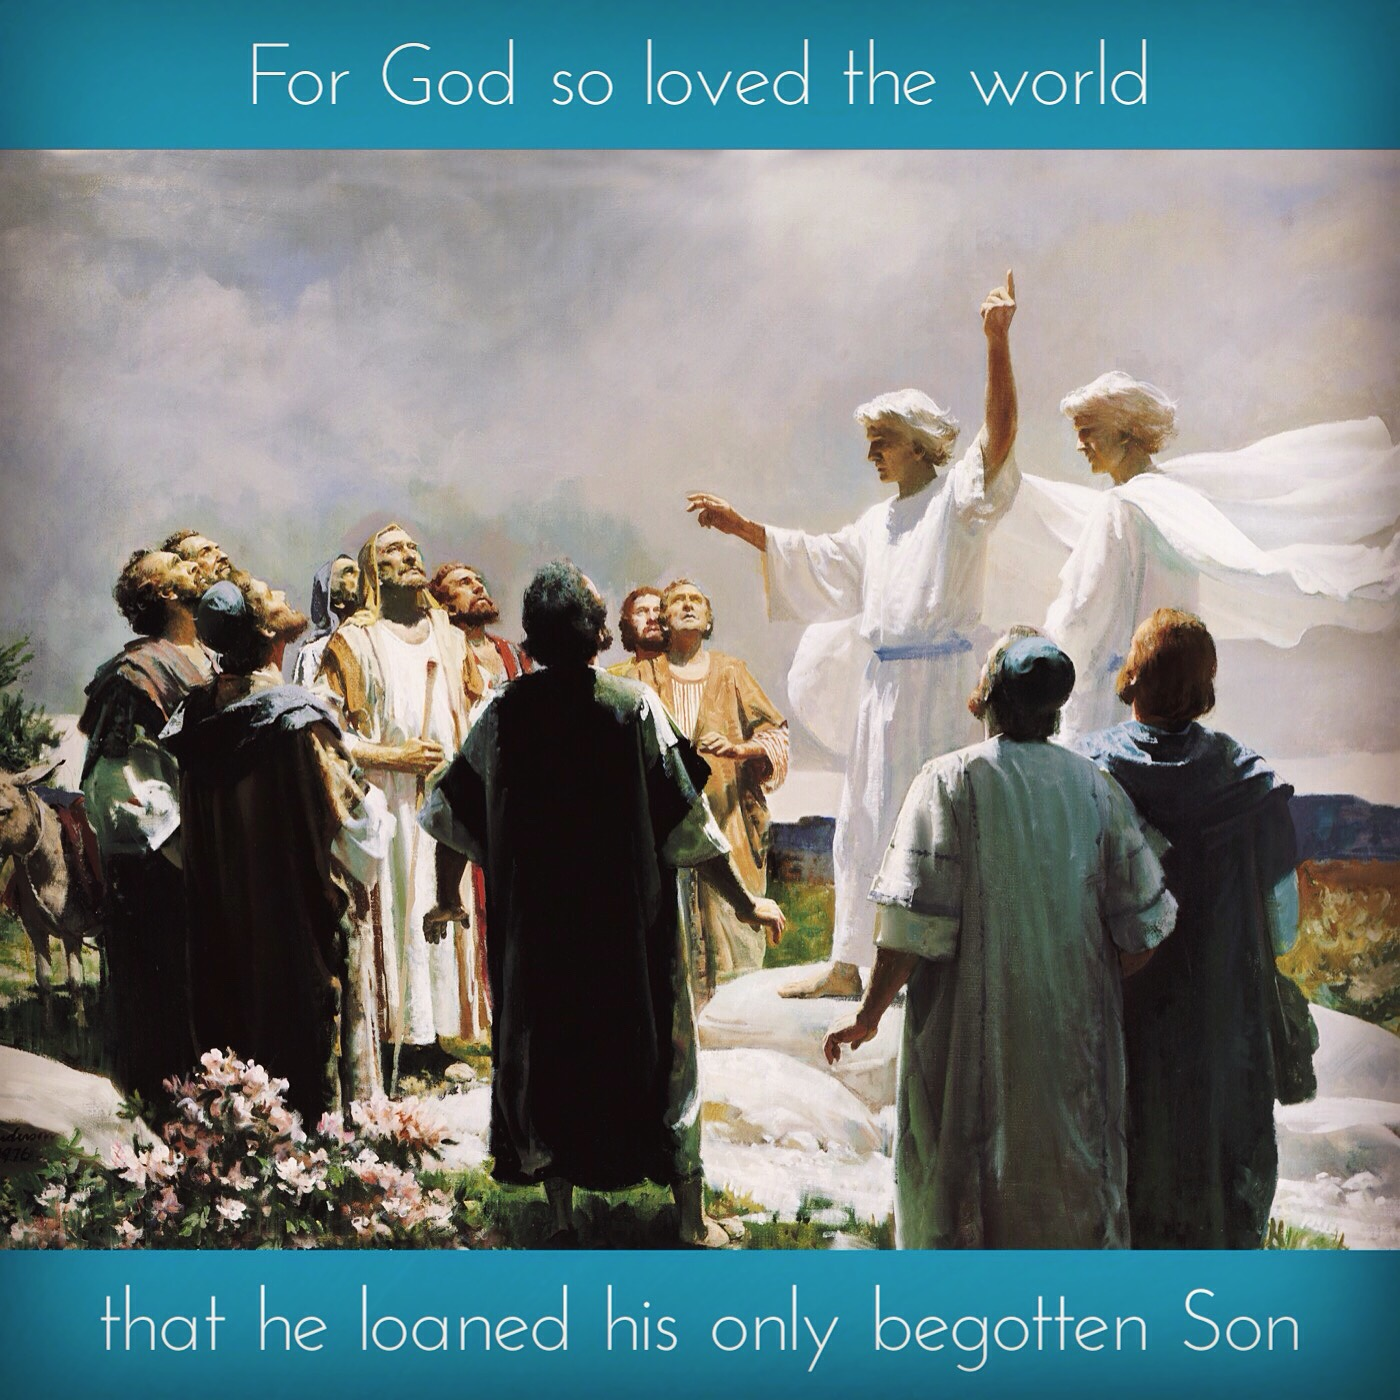 God loaned his only begotten